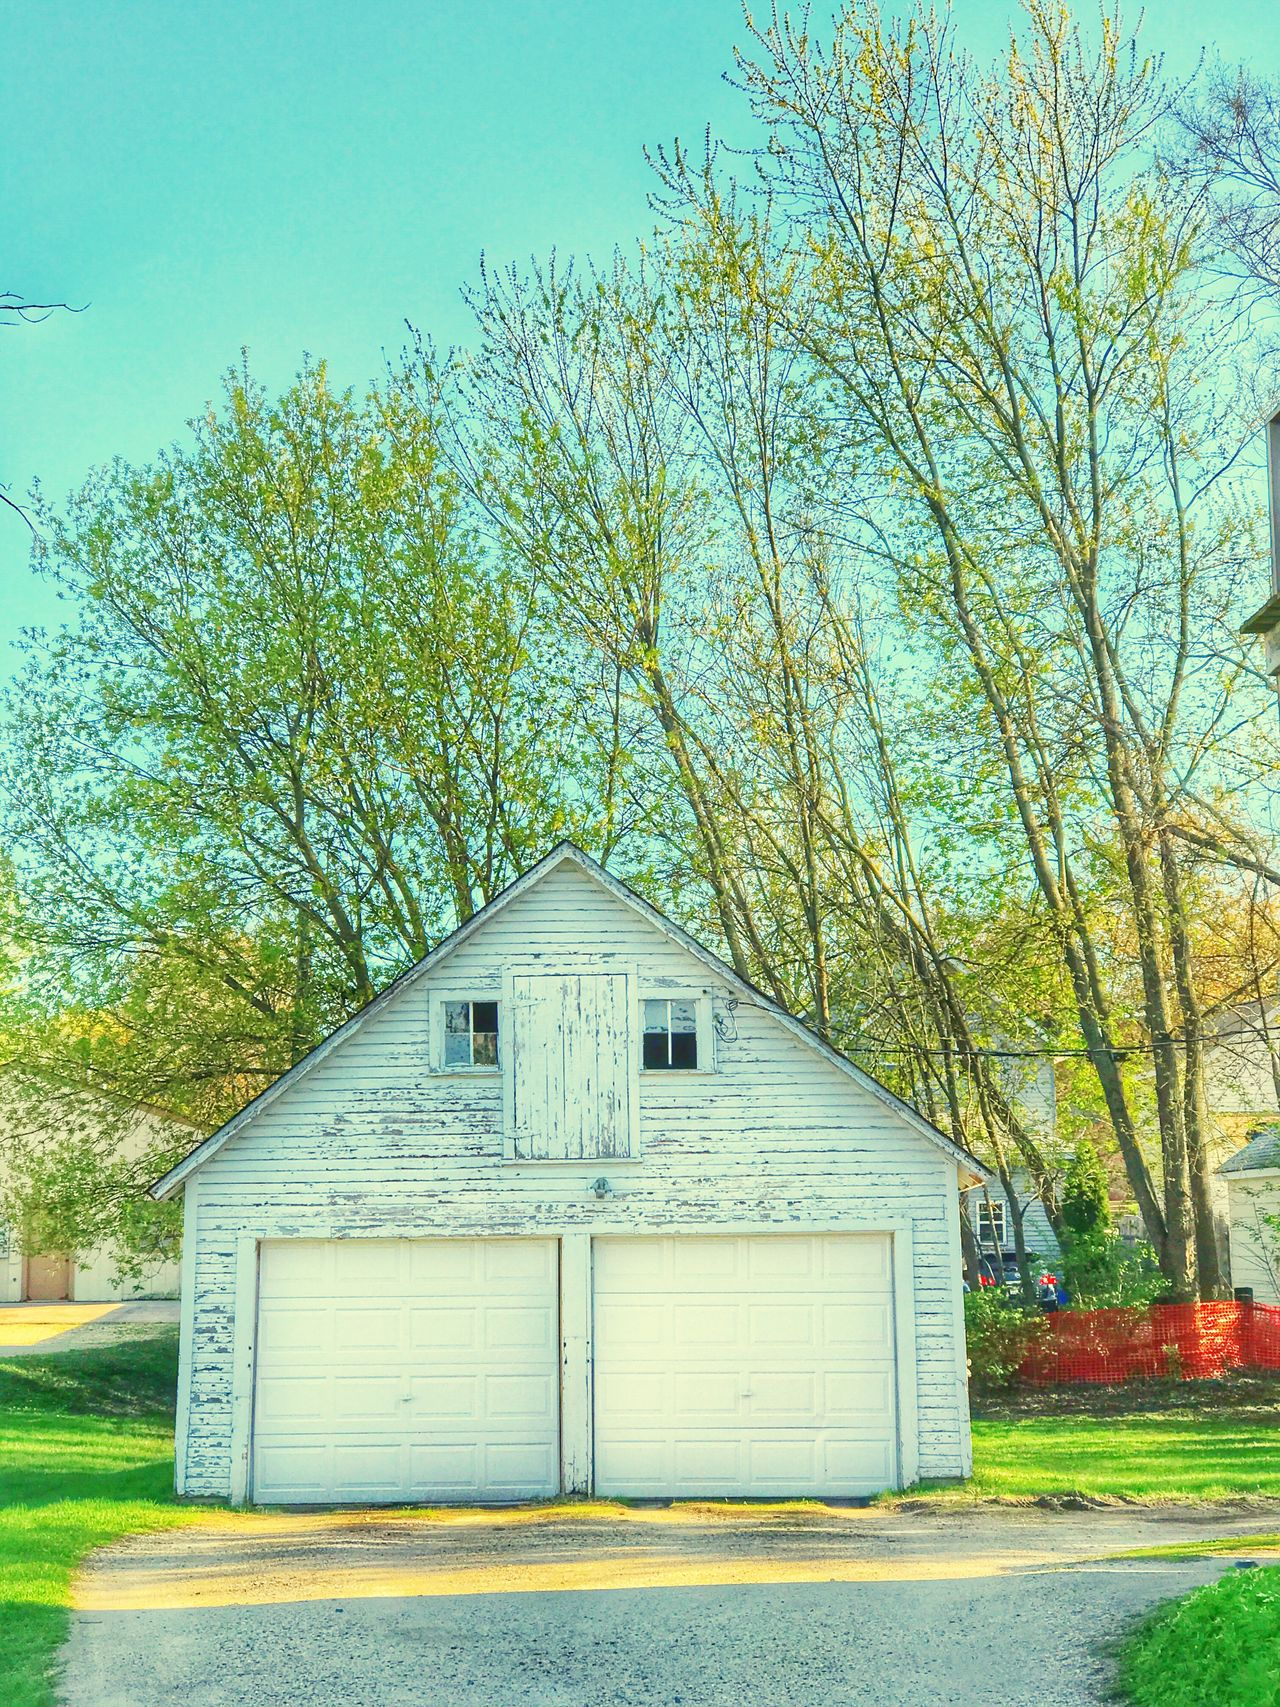 Built Structure Architecture Building Exterior Tree No People Outdoors Day Tranquility Sky Grass Nature White White Barn EyeEm Best Shots EyeEm Best Shots - Architecture EyeEm Nature Lover Urban Skyline Spring Springtime